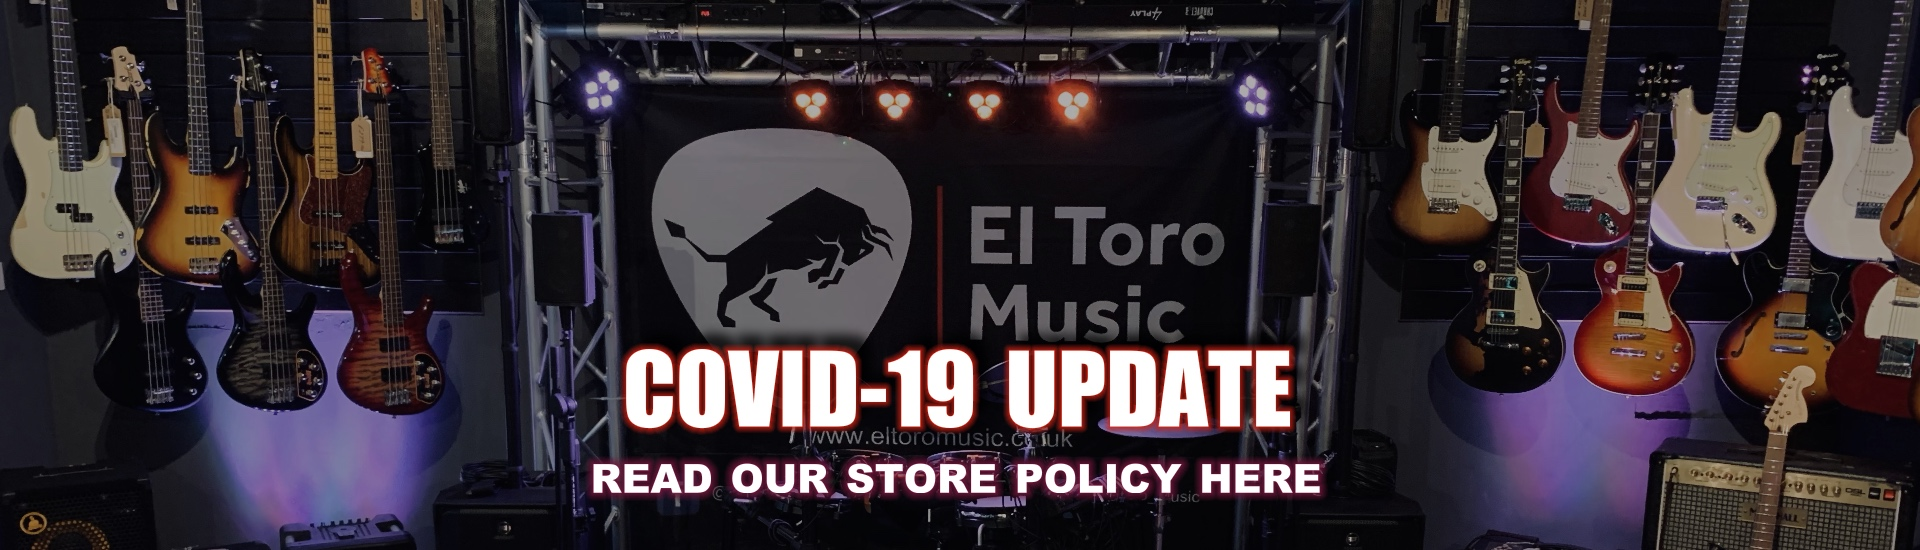 In Store Covid-19 Policy